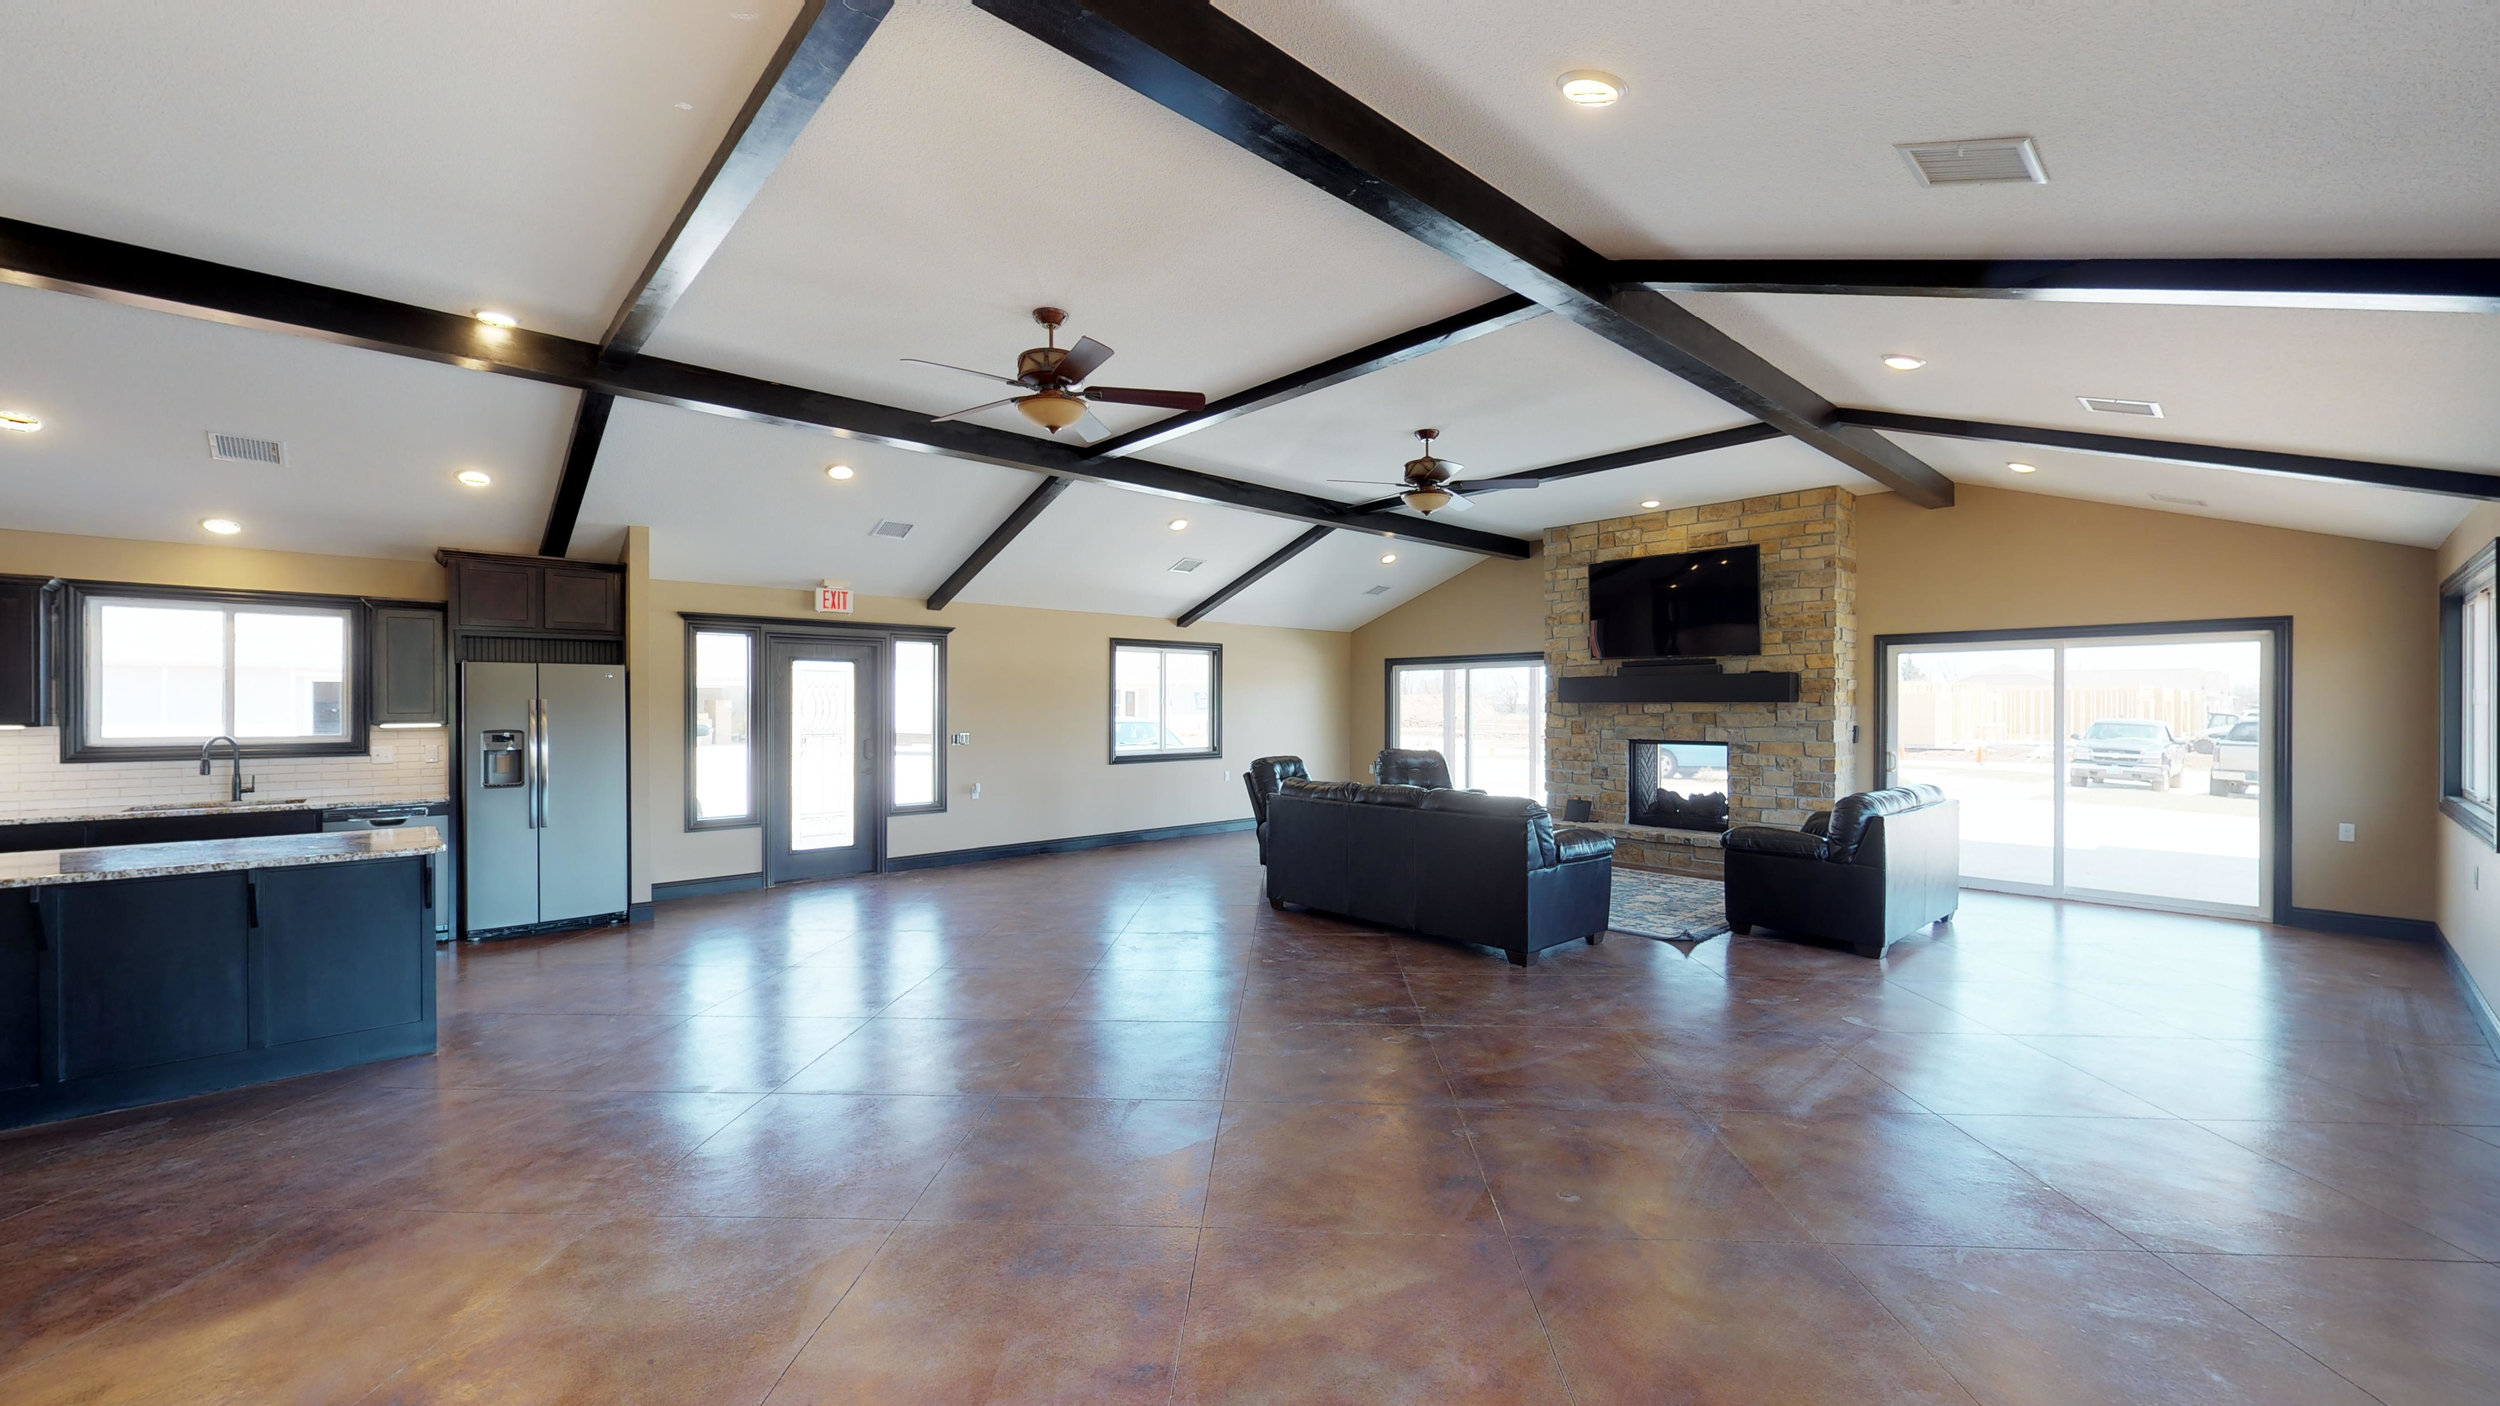 Banquet Hall, Dance Floor, Poker Lounge, Gym!  Everything you need, right where you want it.